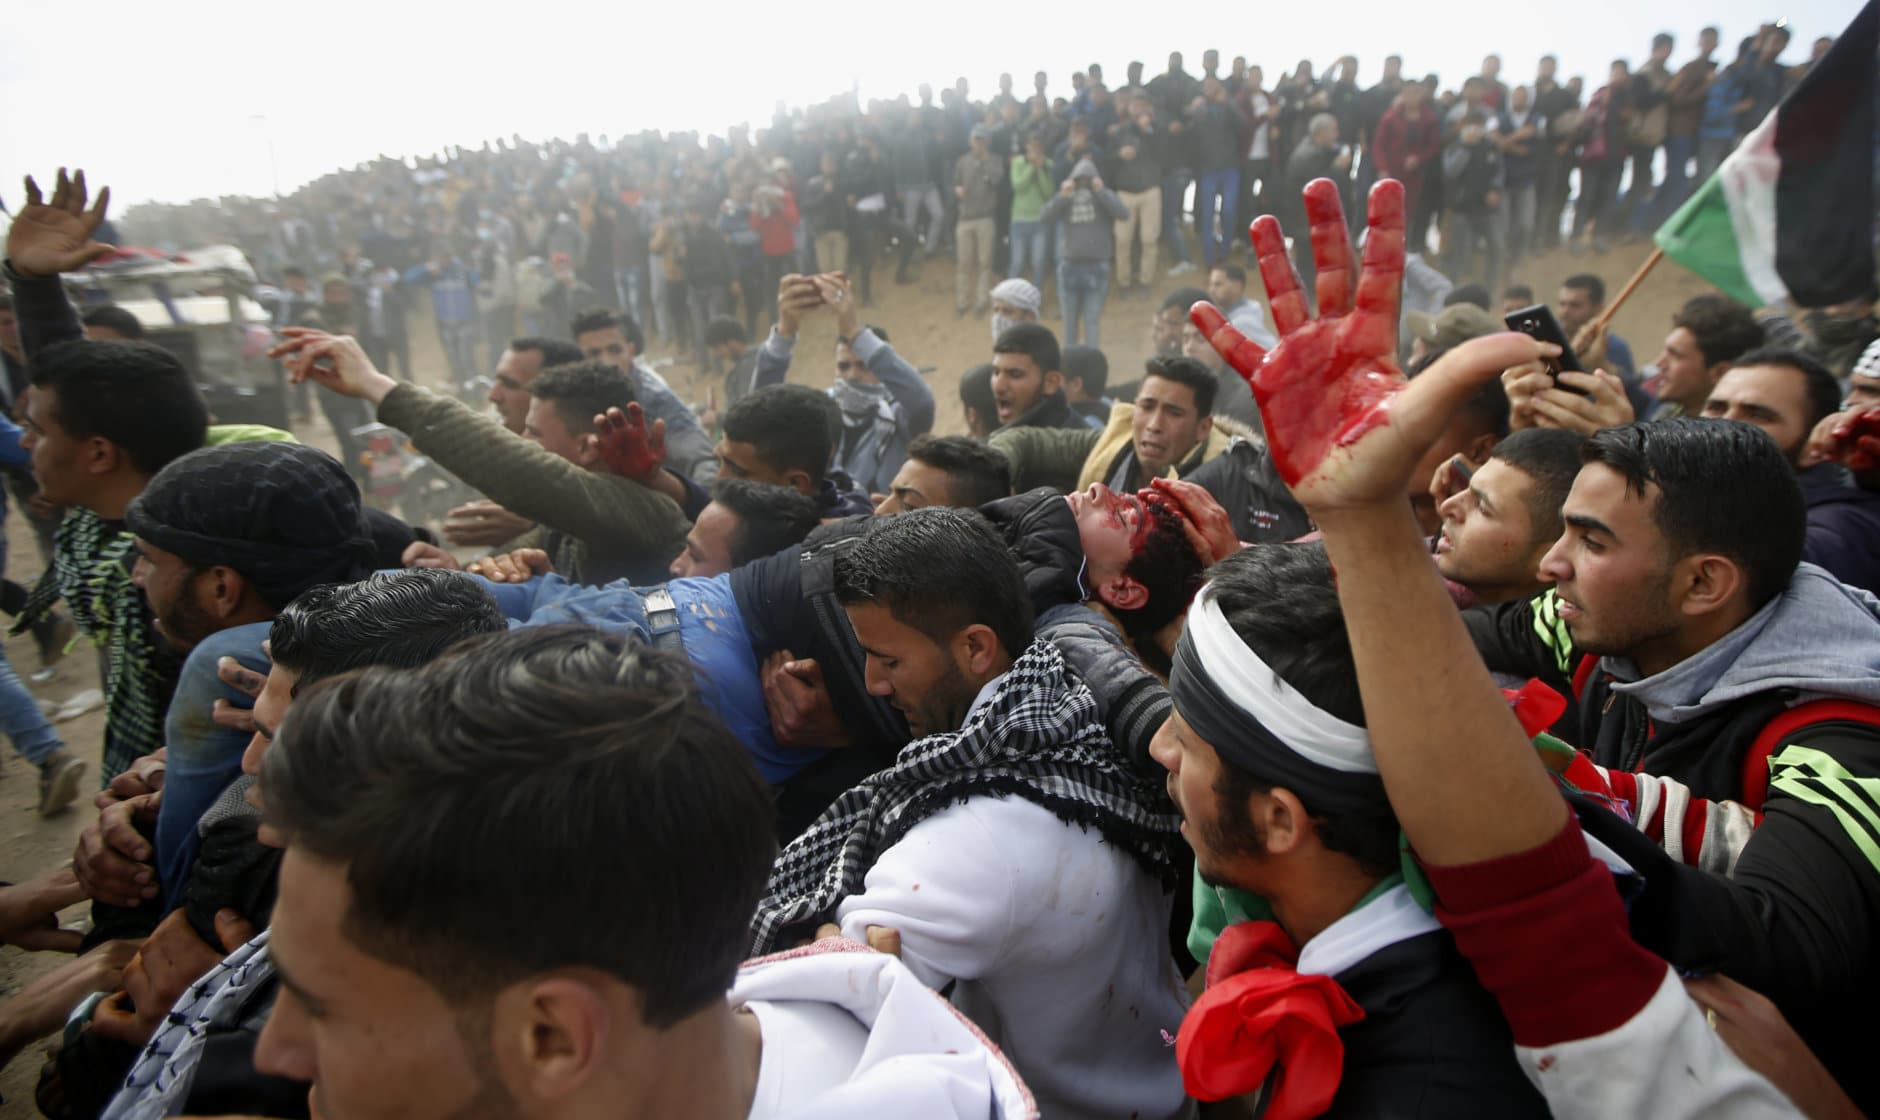 Palestinian protesters evacuate a wounded youth during clashes with Israeli troops along the Gaza Strip border with Israel, east of Khan Younis, Gaza Strip, on March 30, 2018. (AP Photo/Adel Hana)